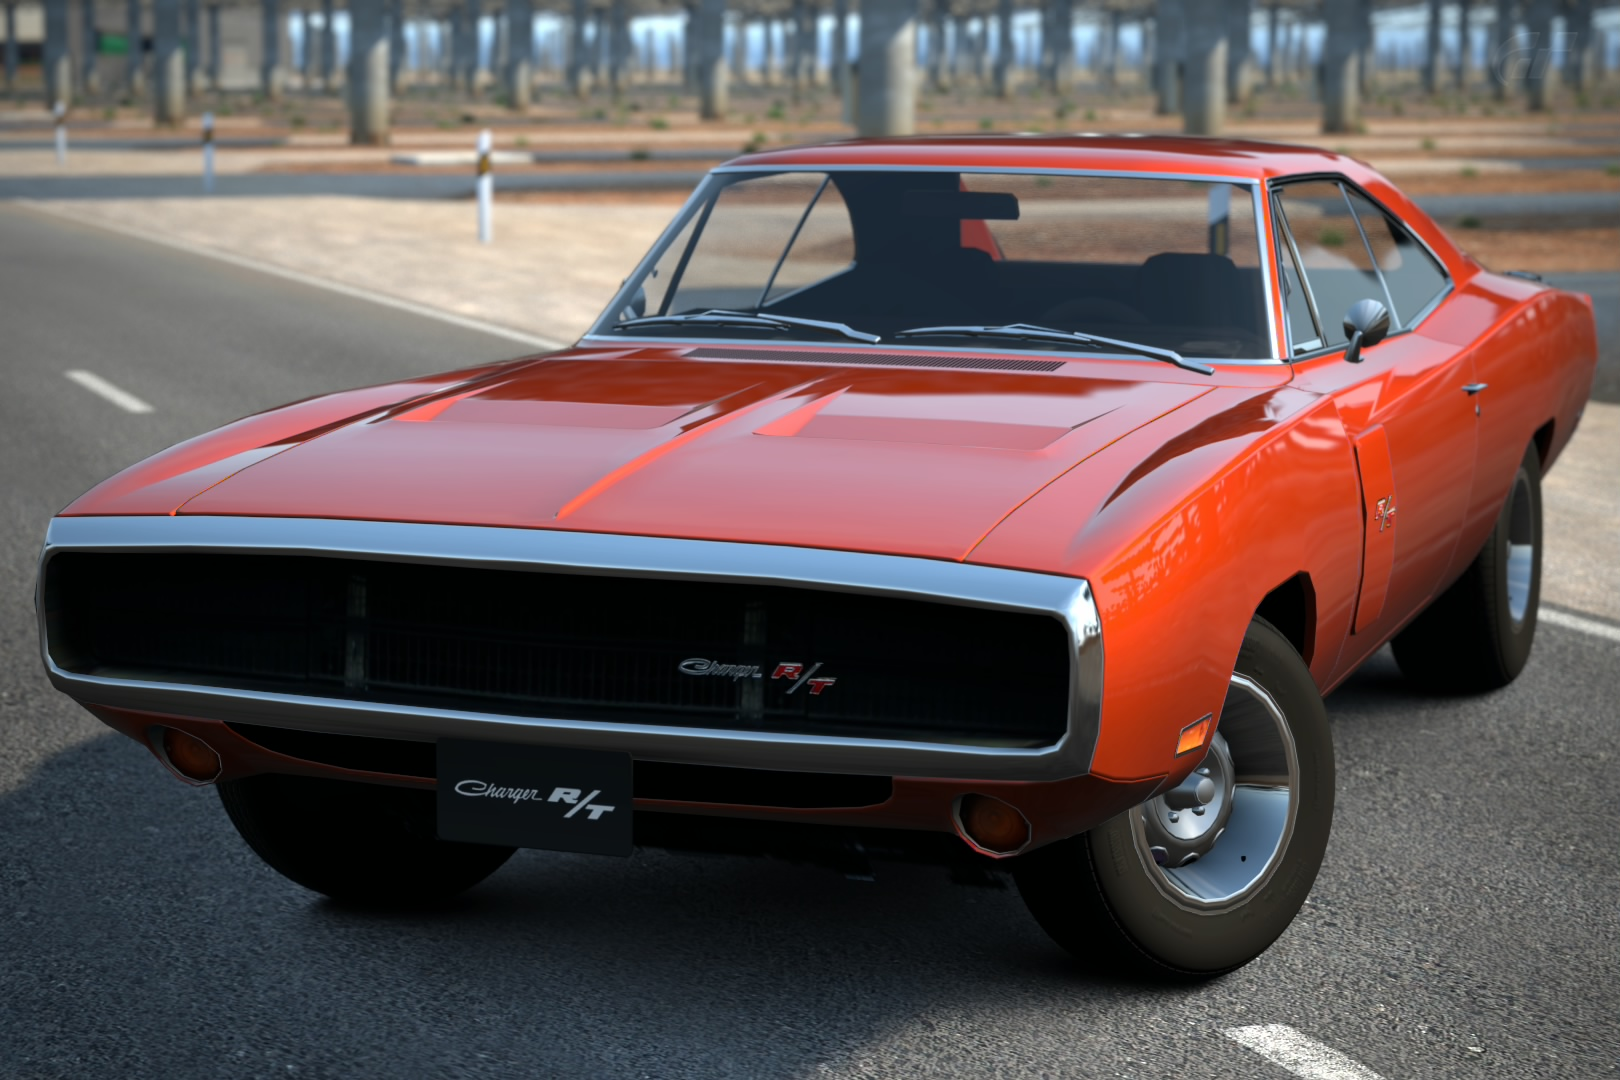 Dodge Charger 440 R/T '70